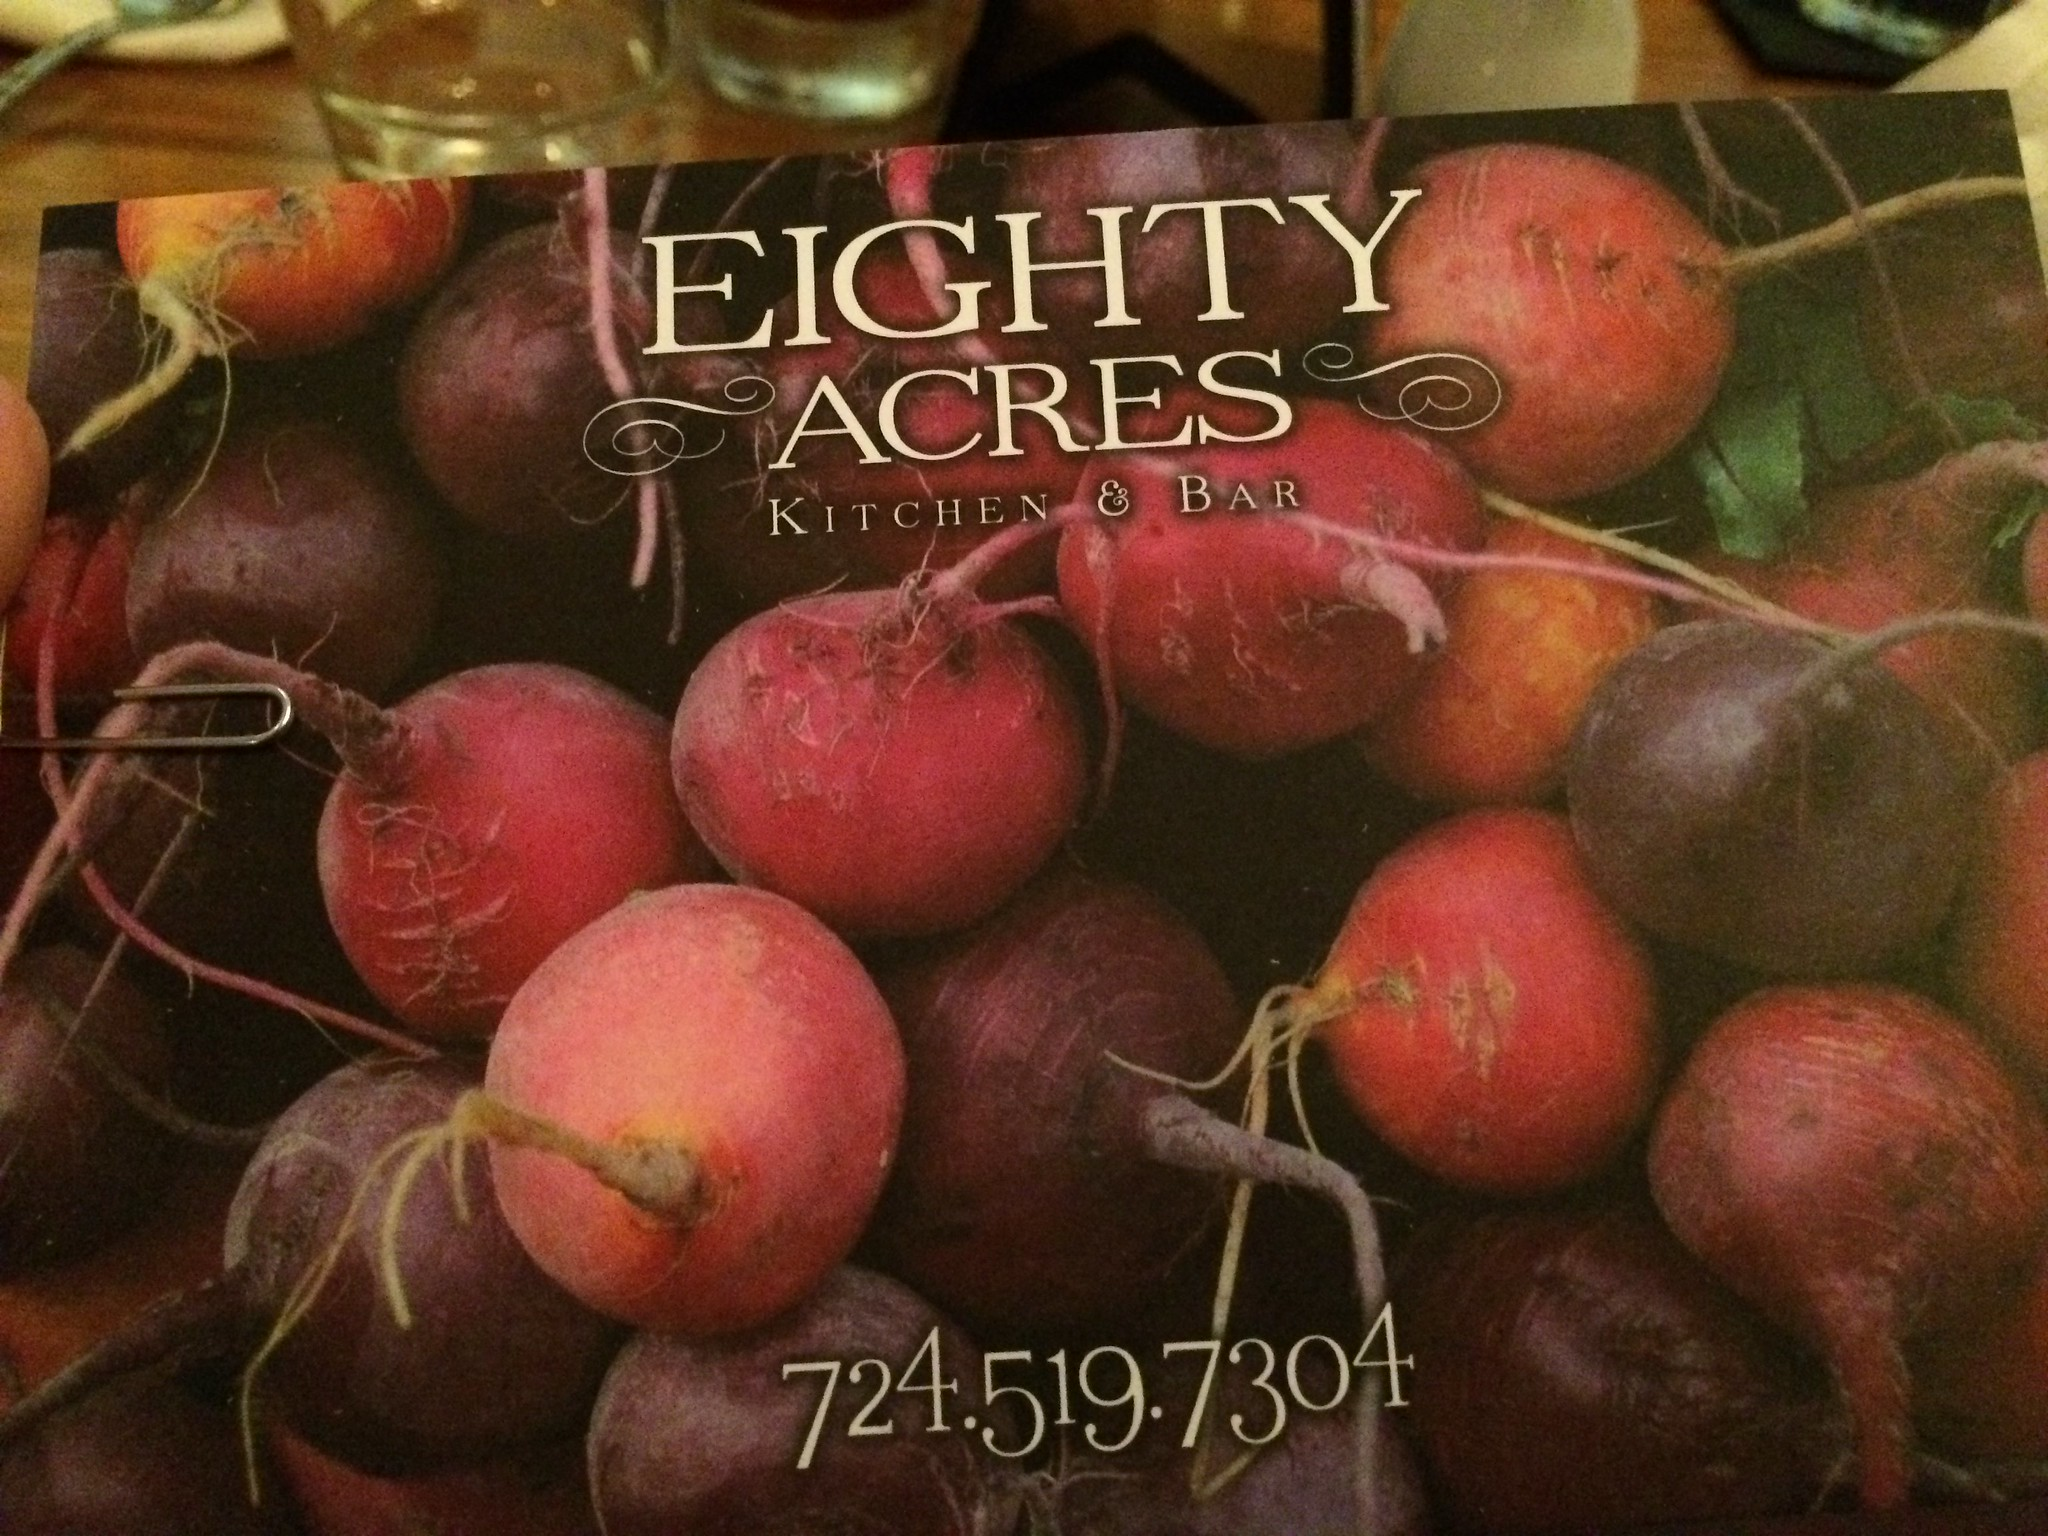 Eighty Acres